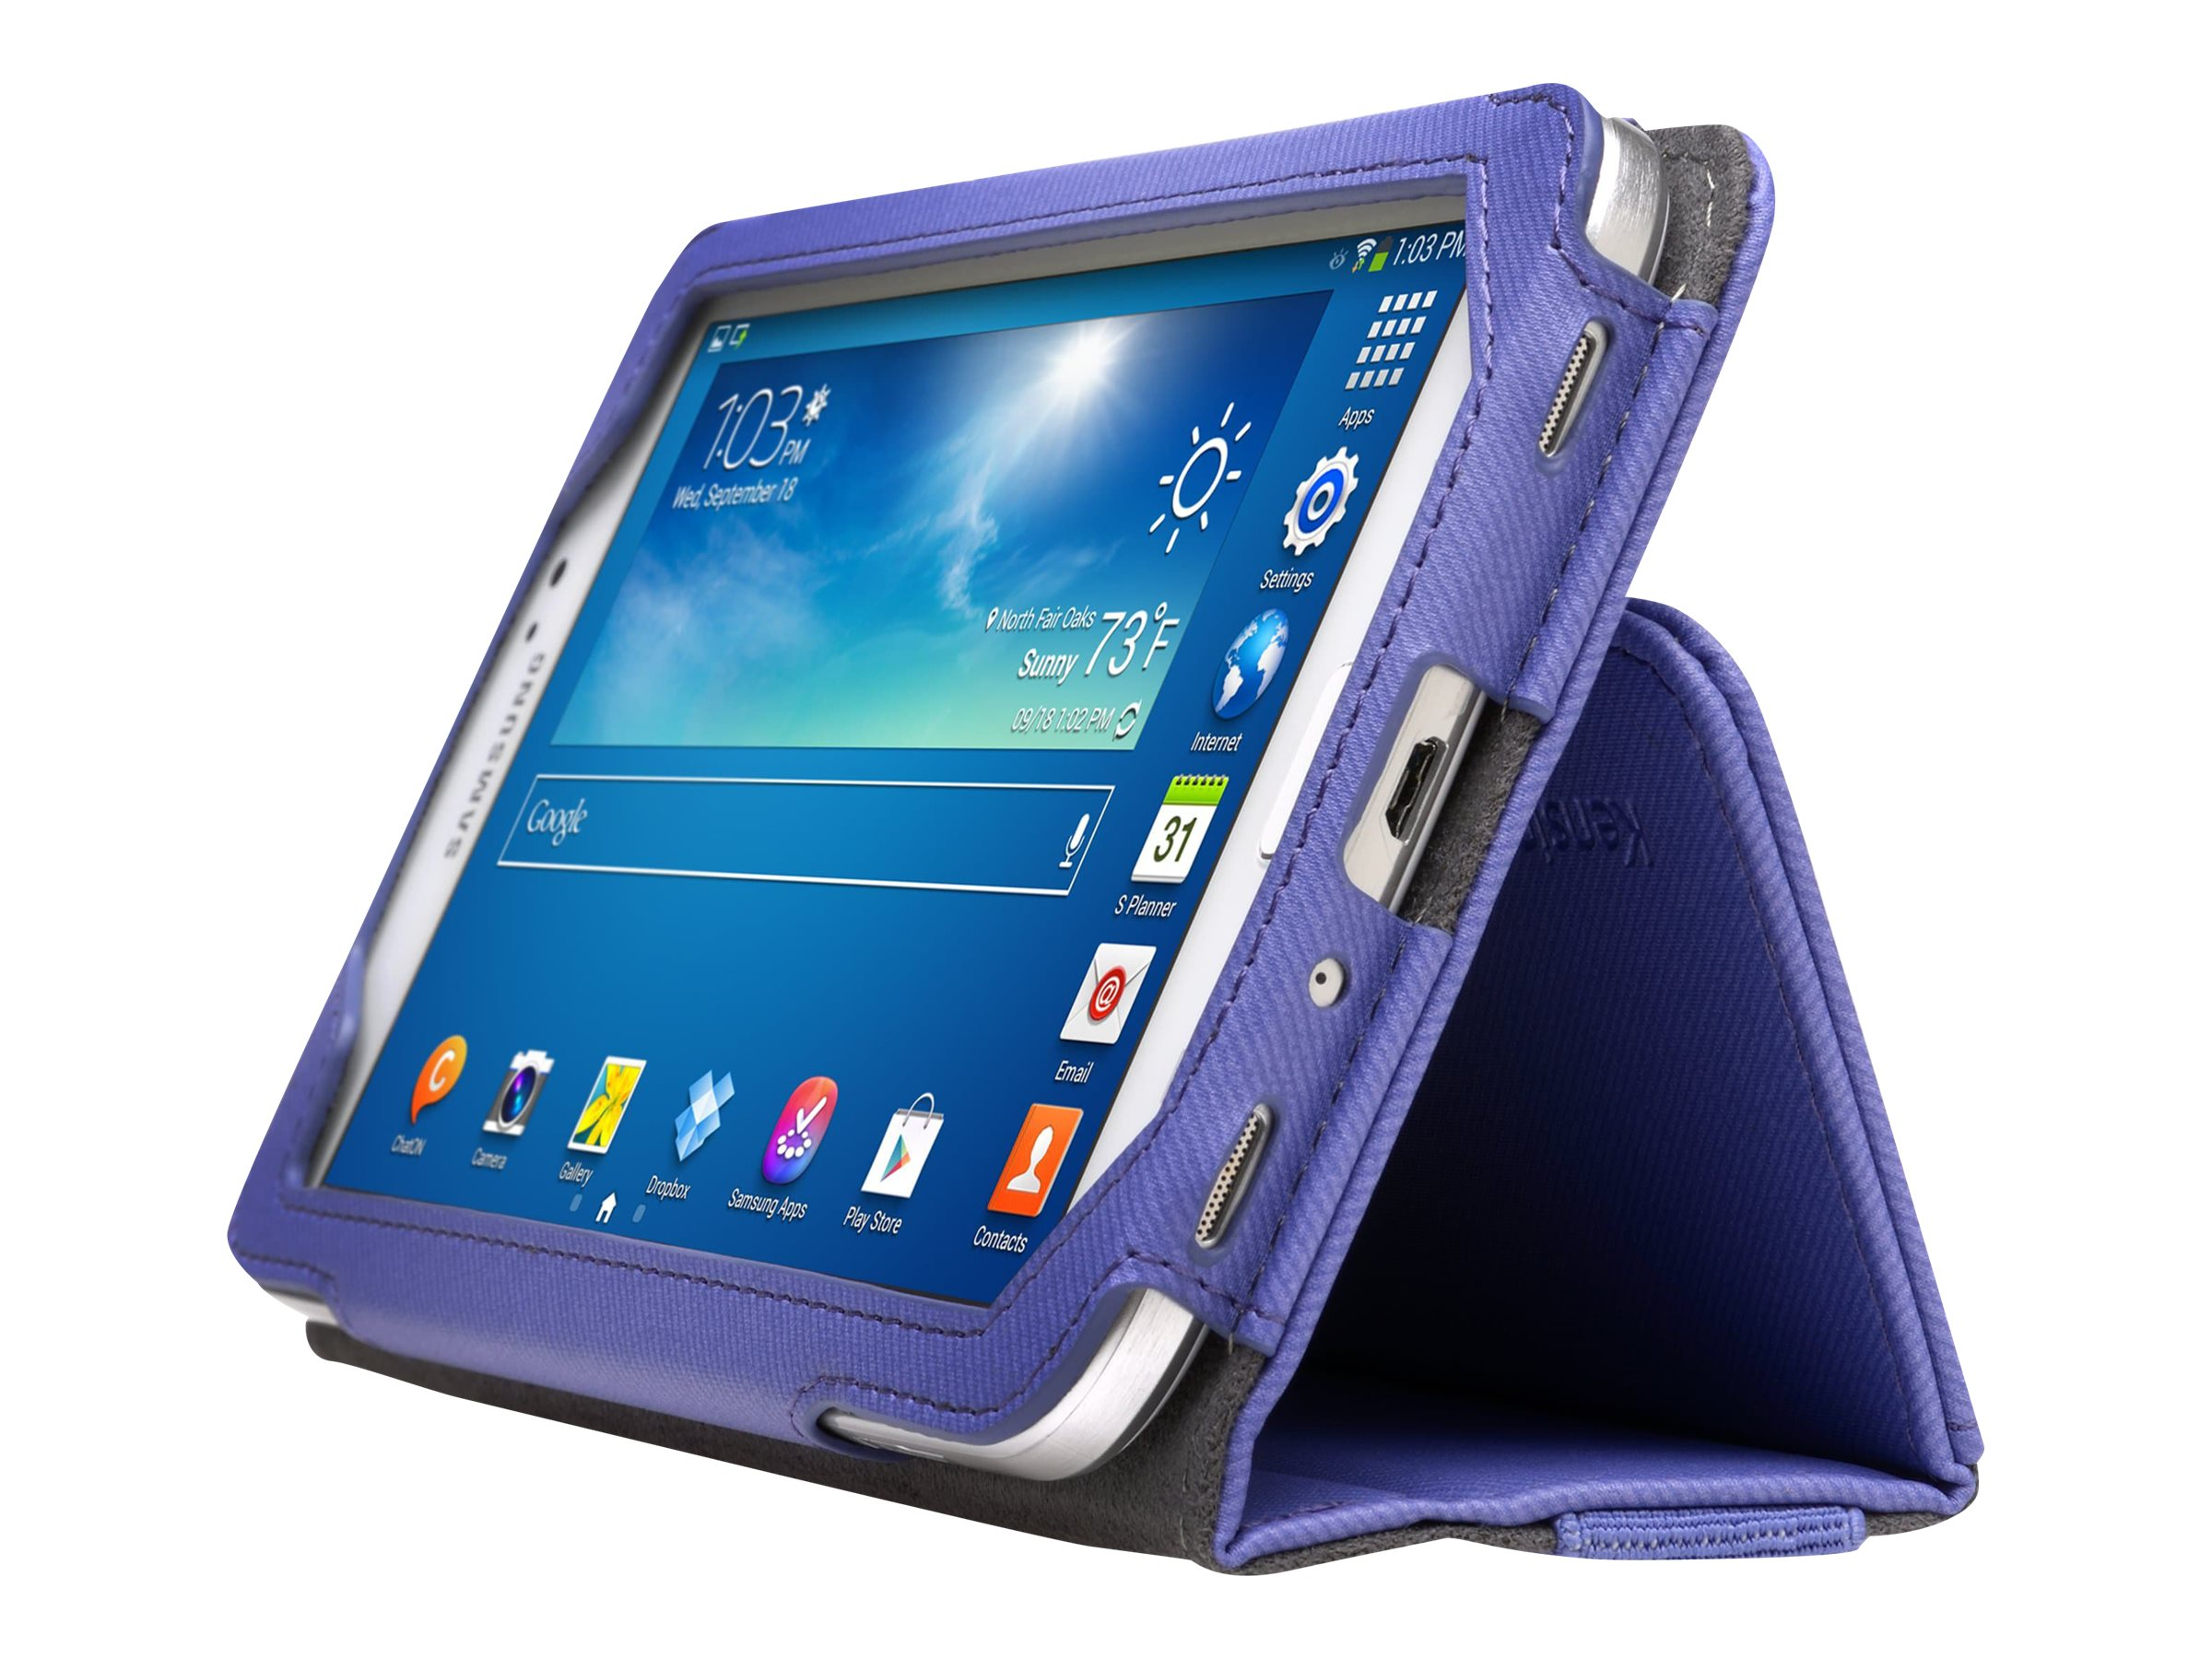 Kensington Portafolio Soft Folio Case for Samsung Galaxy Tab 3 7.0 Purple